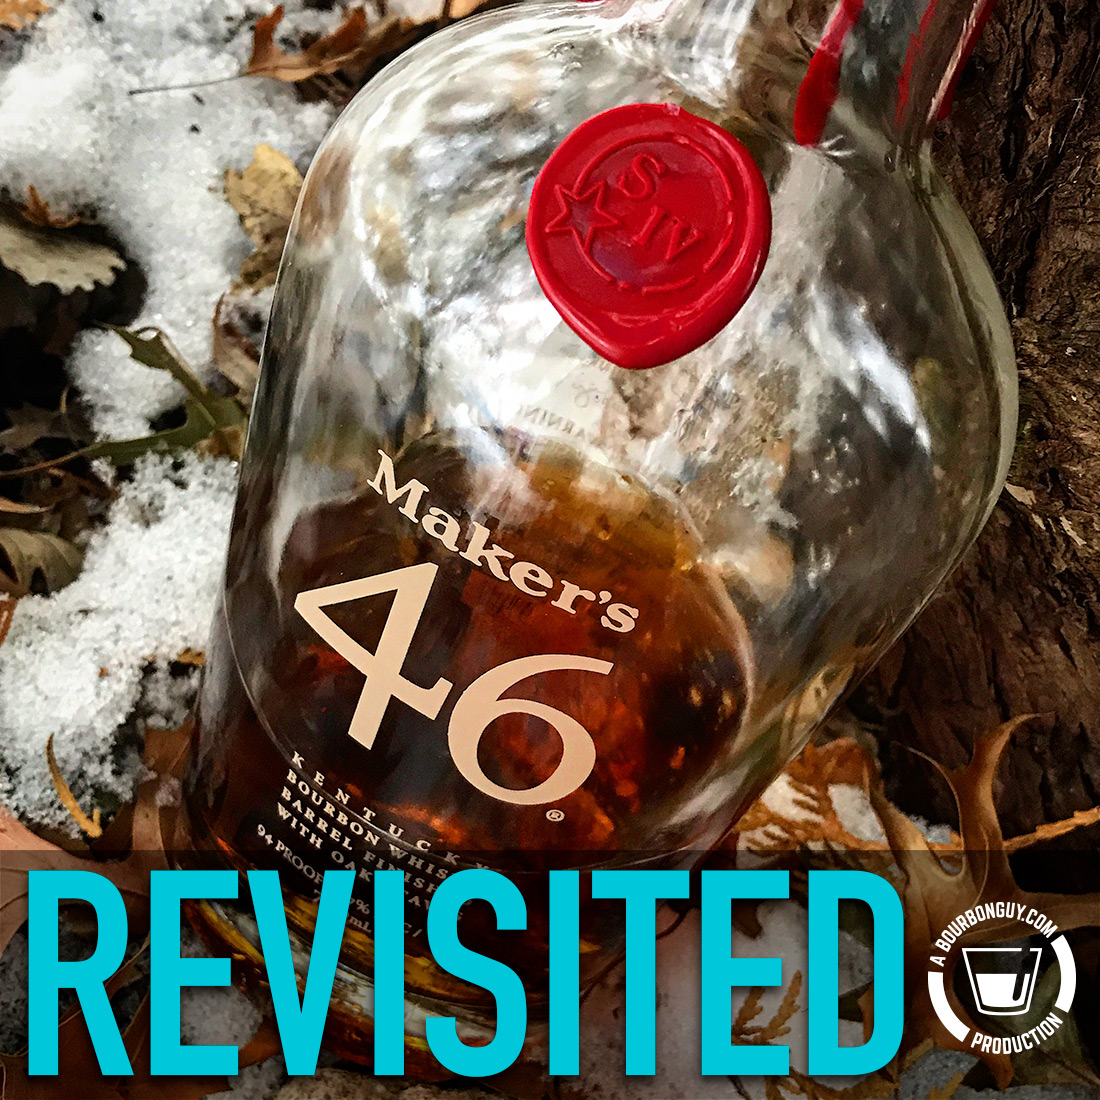 IMAGE: A bottle of Maker's 46 sitting in light snow over leafy ground while leaning against a tree.